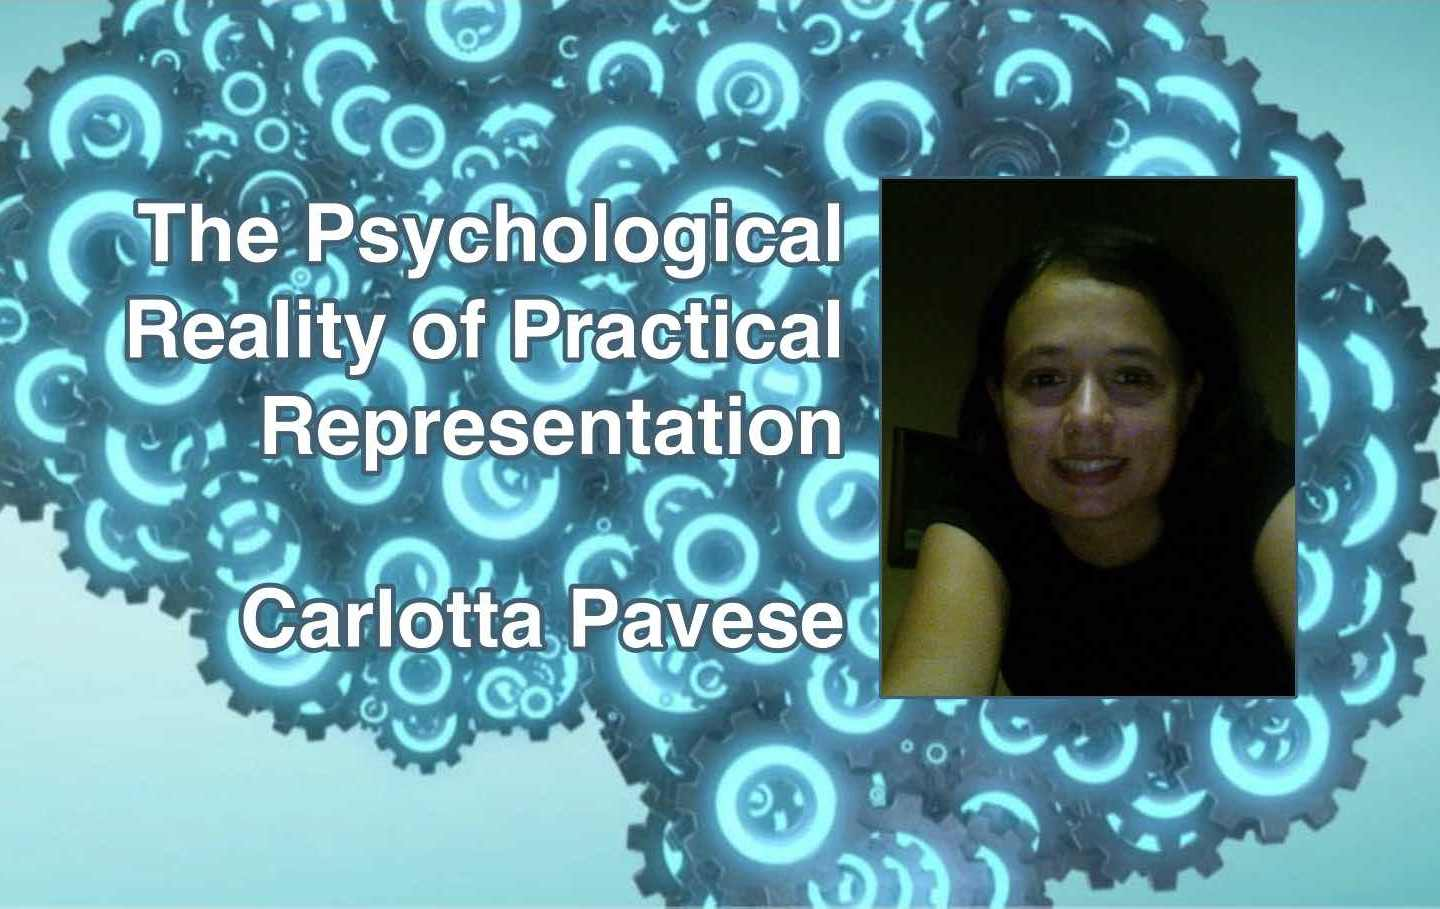 Carlotta Pavese on the Psychological Reality of Practical Representation